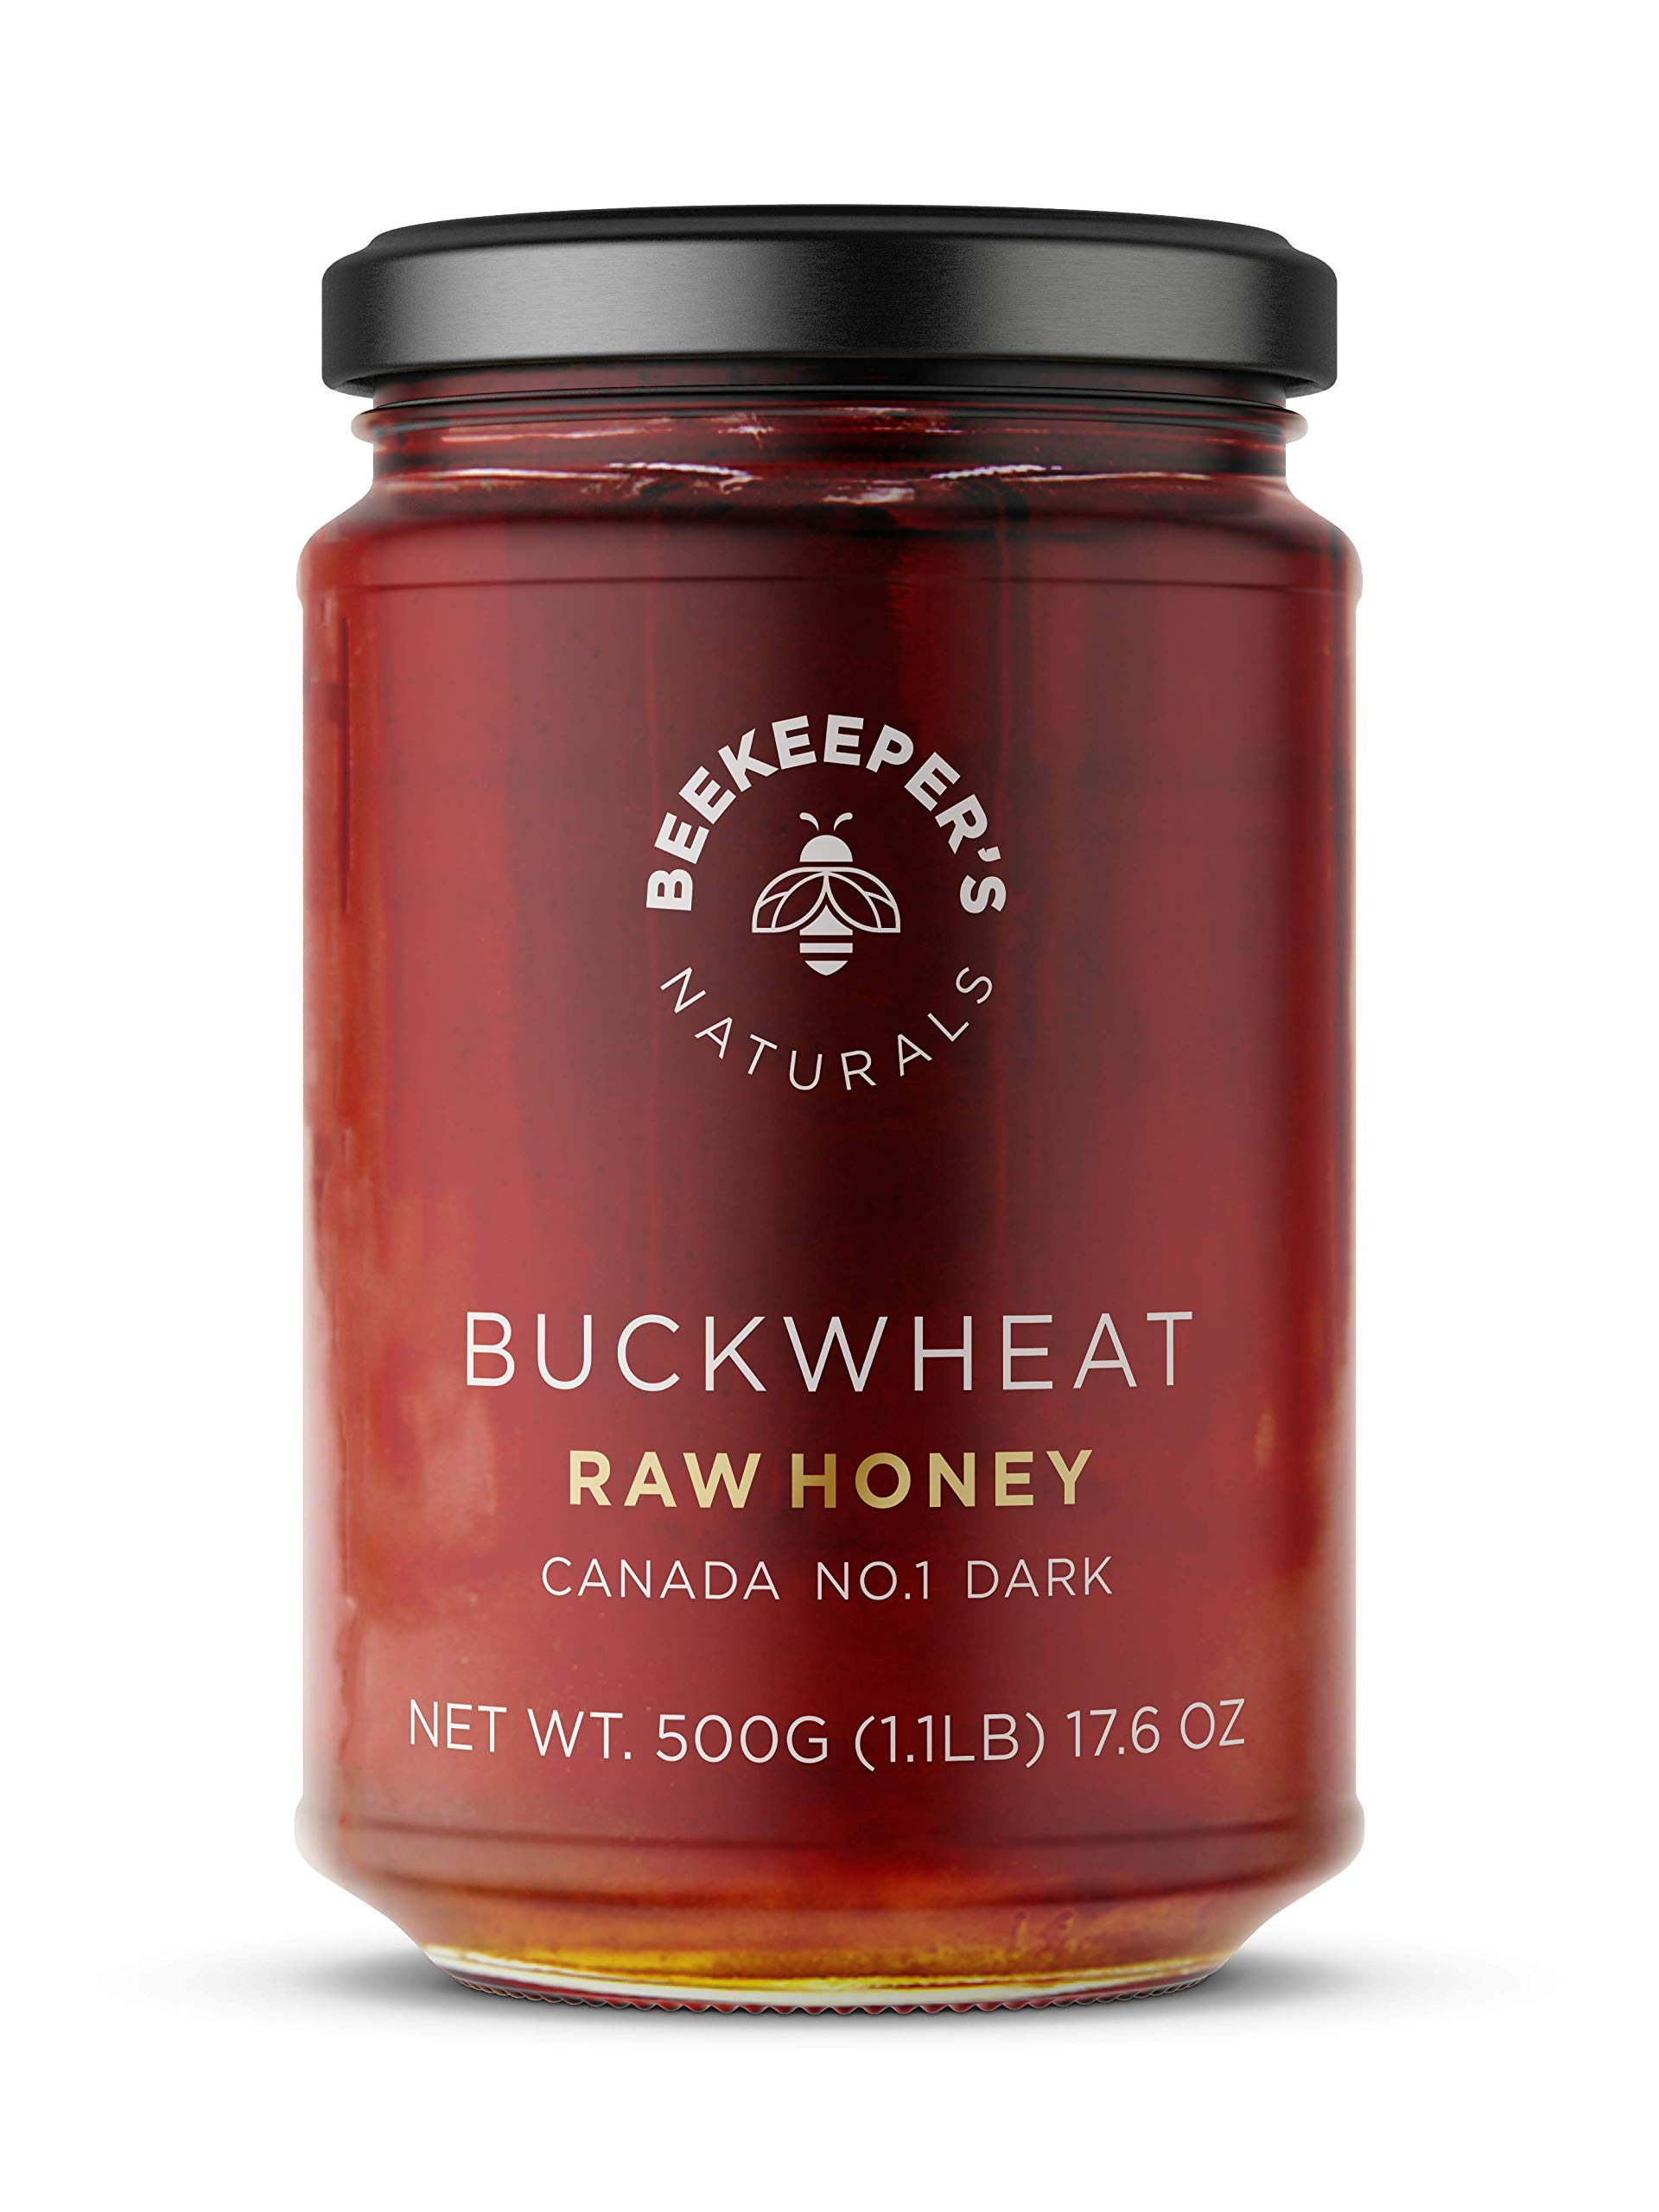 BEEKEEPER'S NATURALS Buckwheat Honey - Unprocessed Ultra-Pure Honey, Containing No Additives - High In Antioxidants and Beneficial Enzymes - 100% Raw, Pure Honey - Paleo-Friendly, Gluten-Free (1.1lbs)